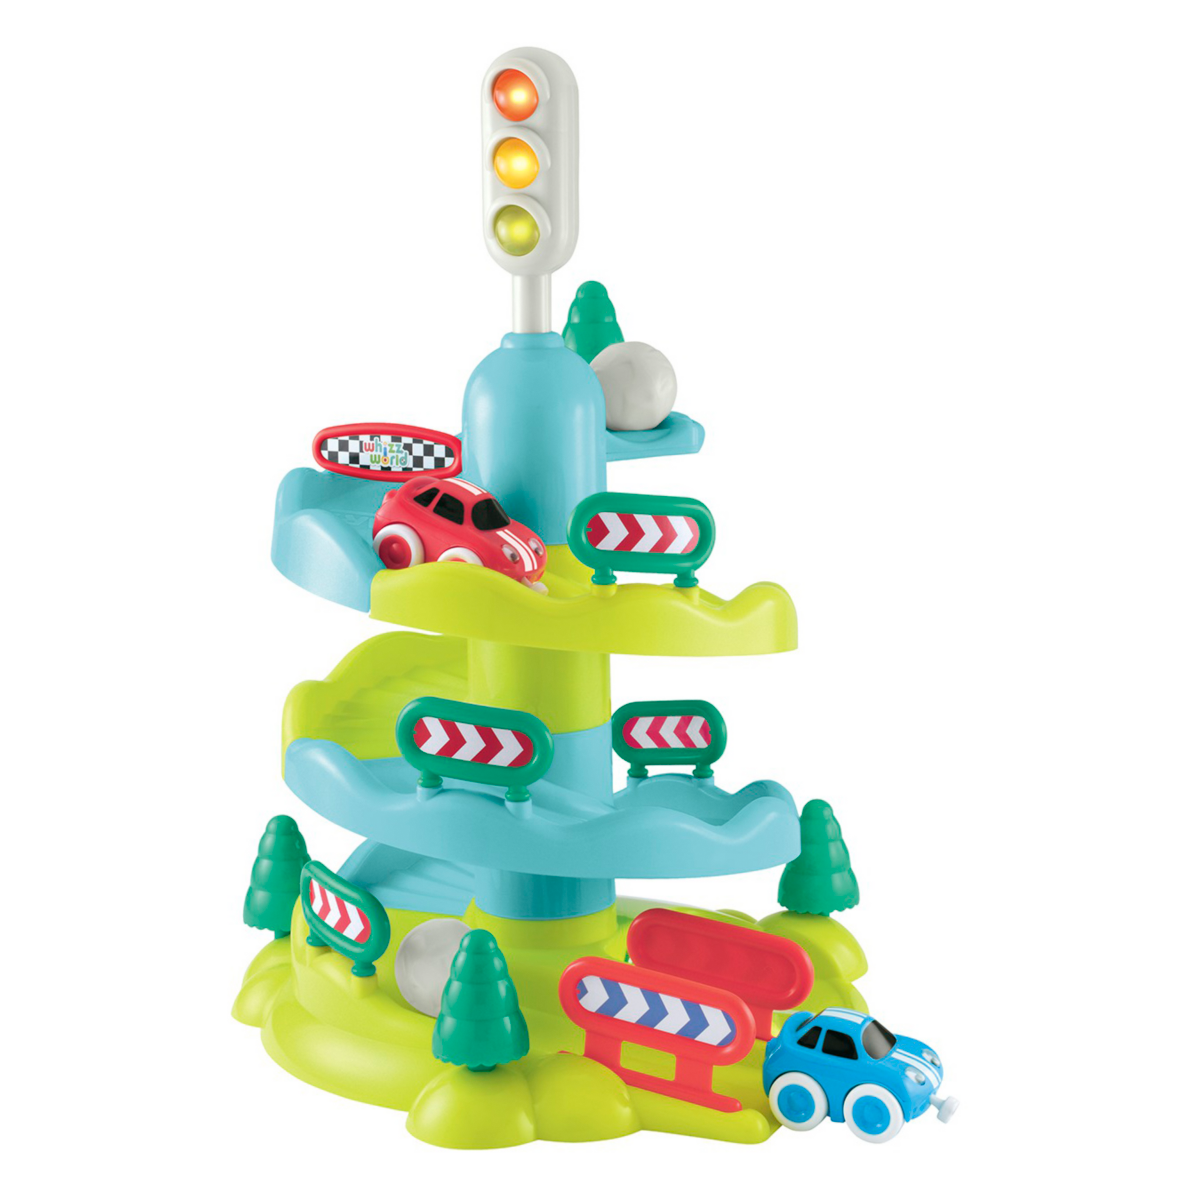 Whizz World Lights and Sounds Mountain Set from Early Learning Center